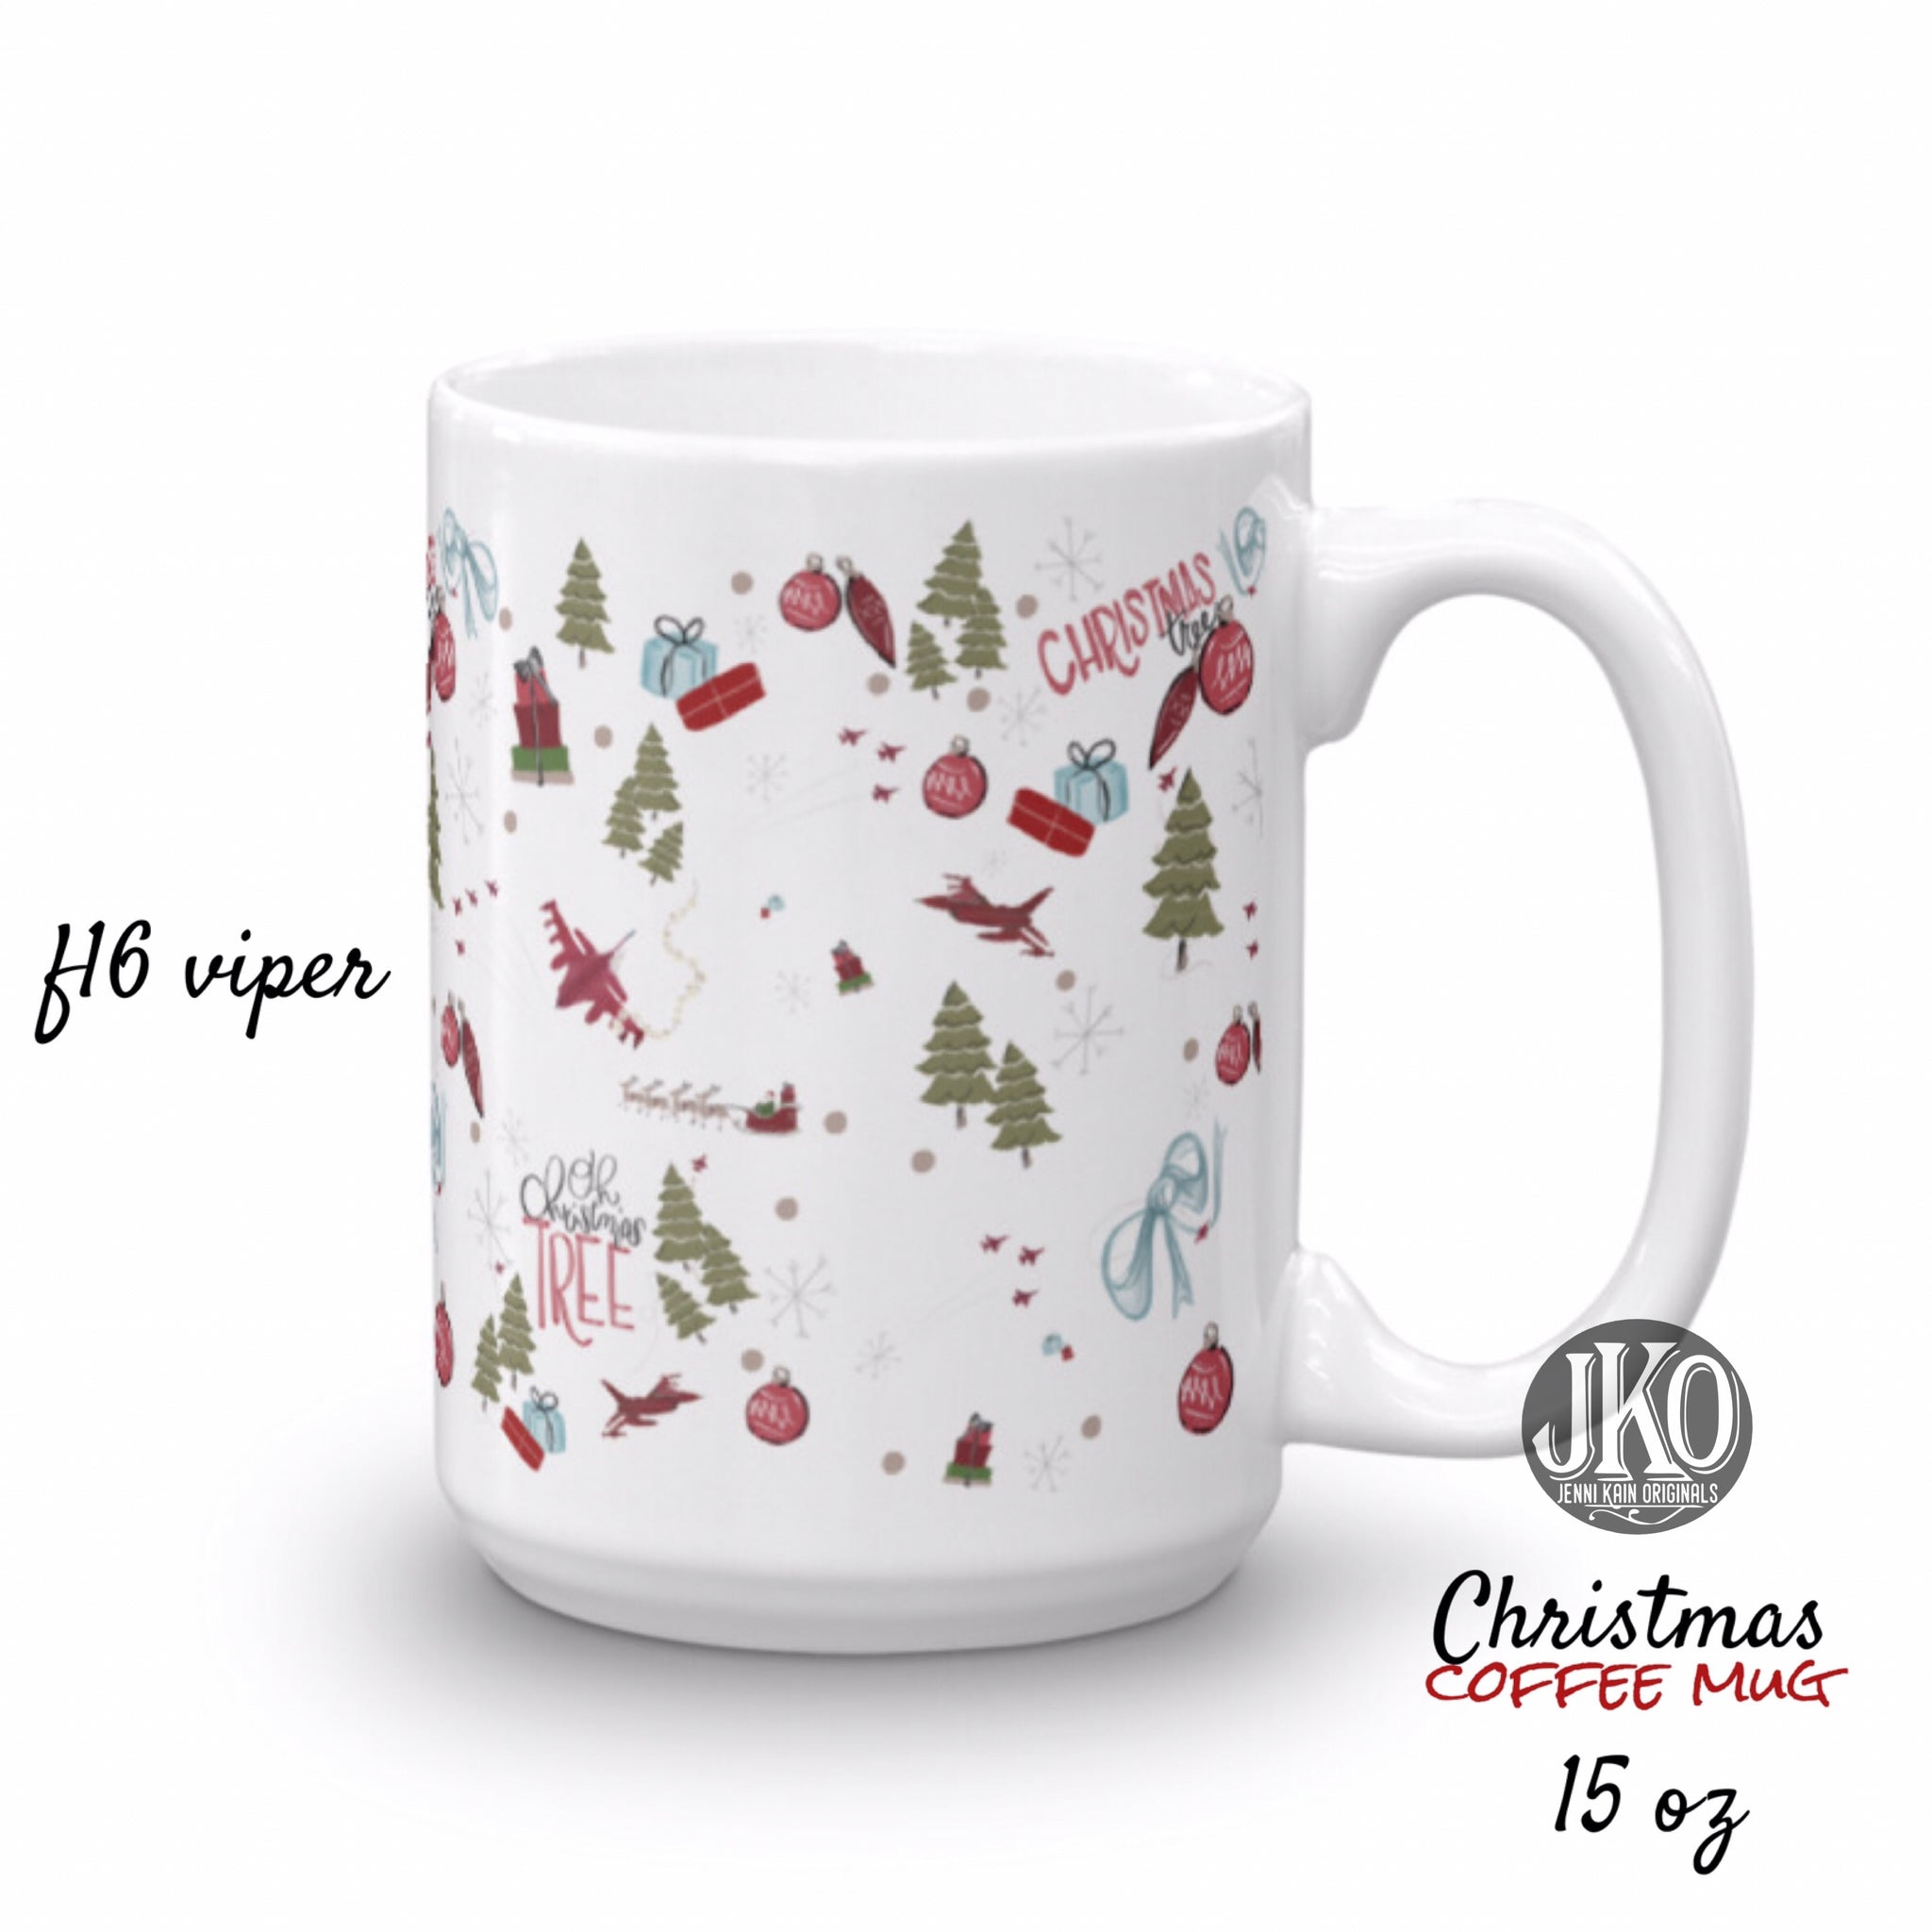 Christmas Coffee Mugs.2018 Christmas Coffee Mug F16